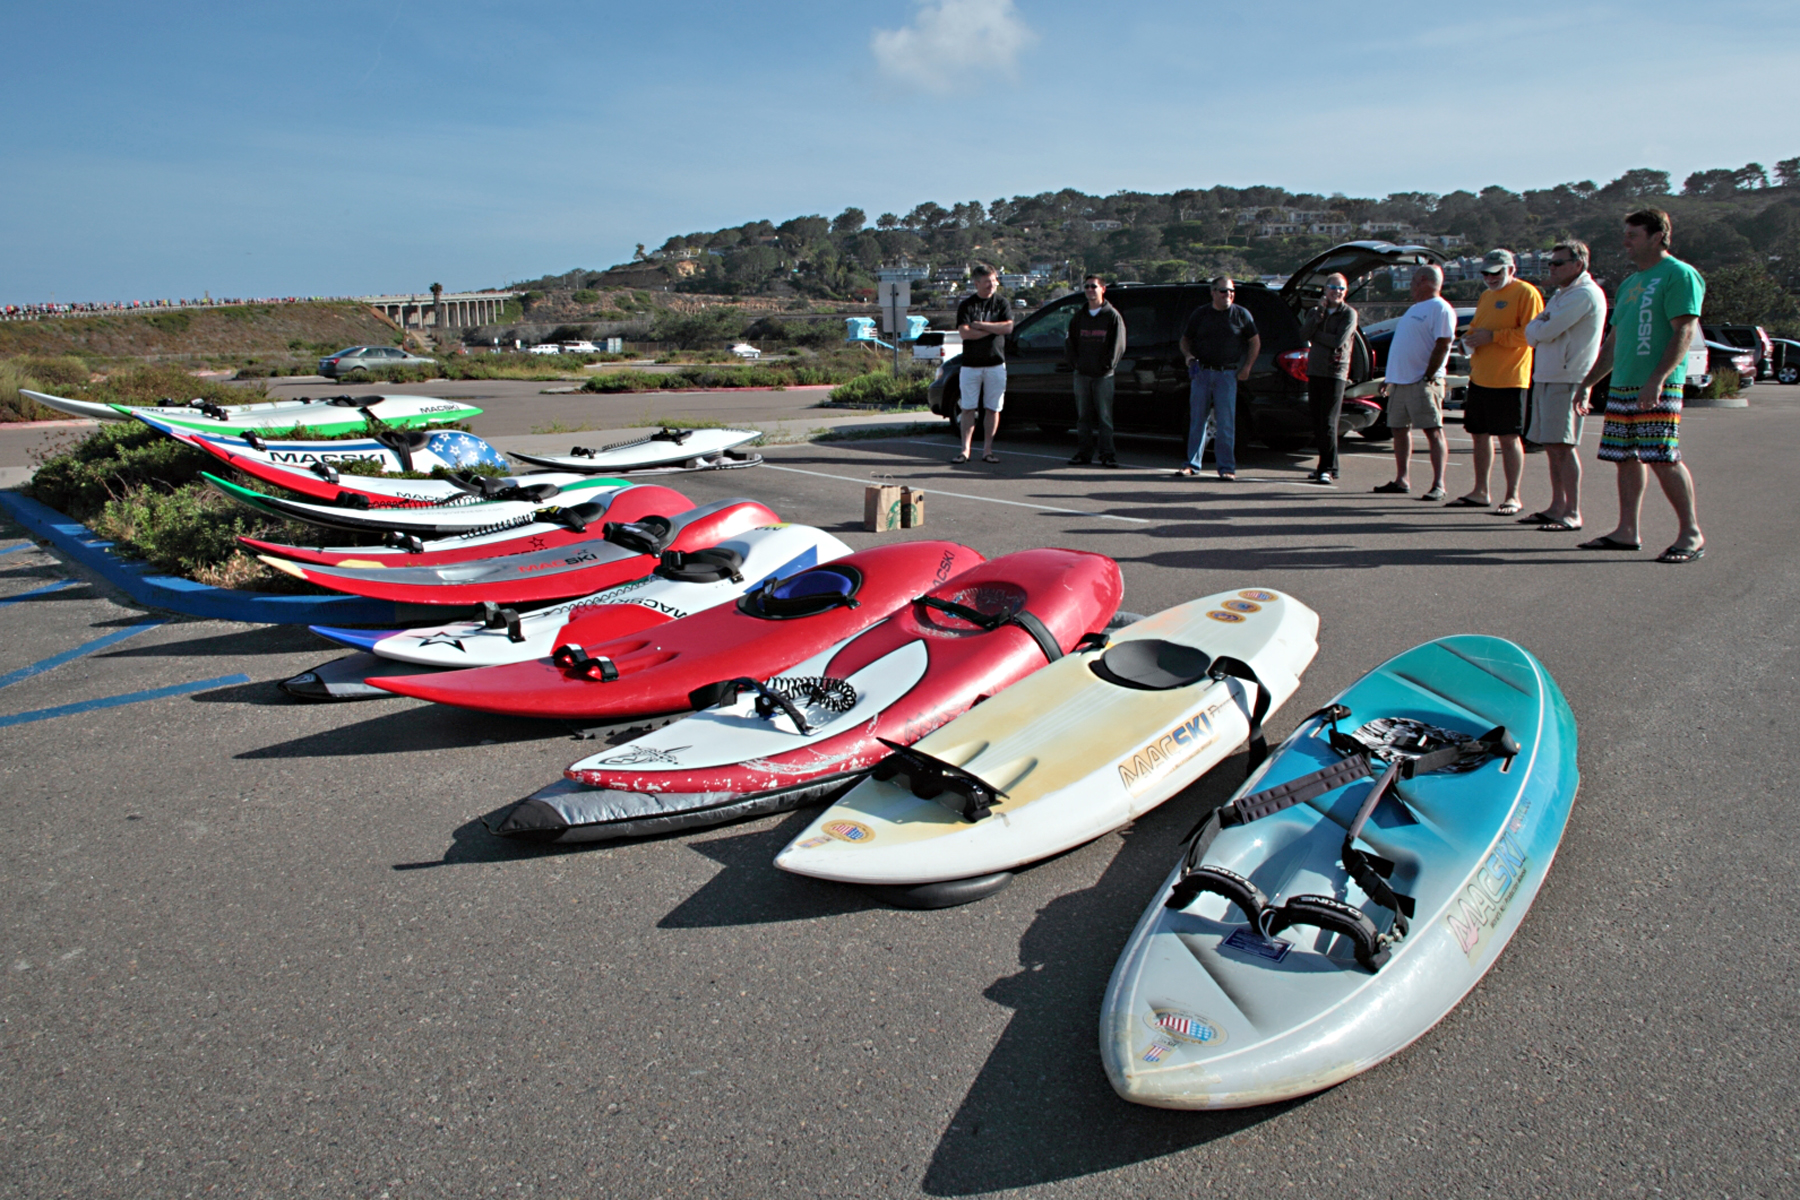 April 26th, 2015 - Macski Destroyer & Legend's launching at Torrey Pines State Park (click on pic to view the video)